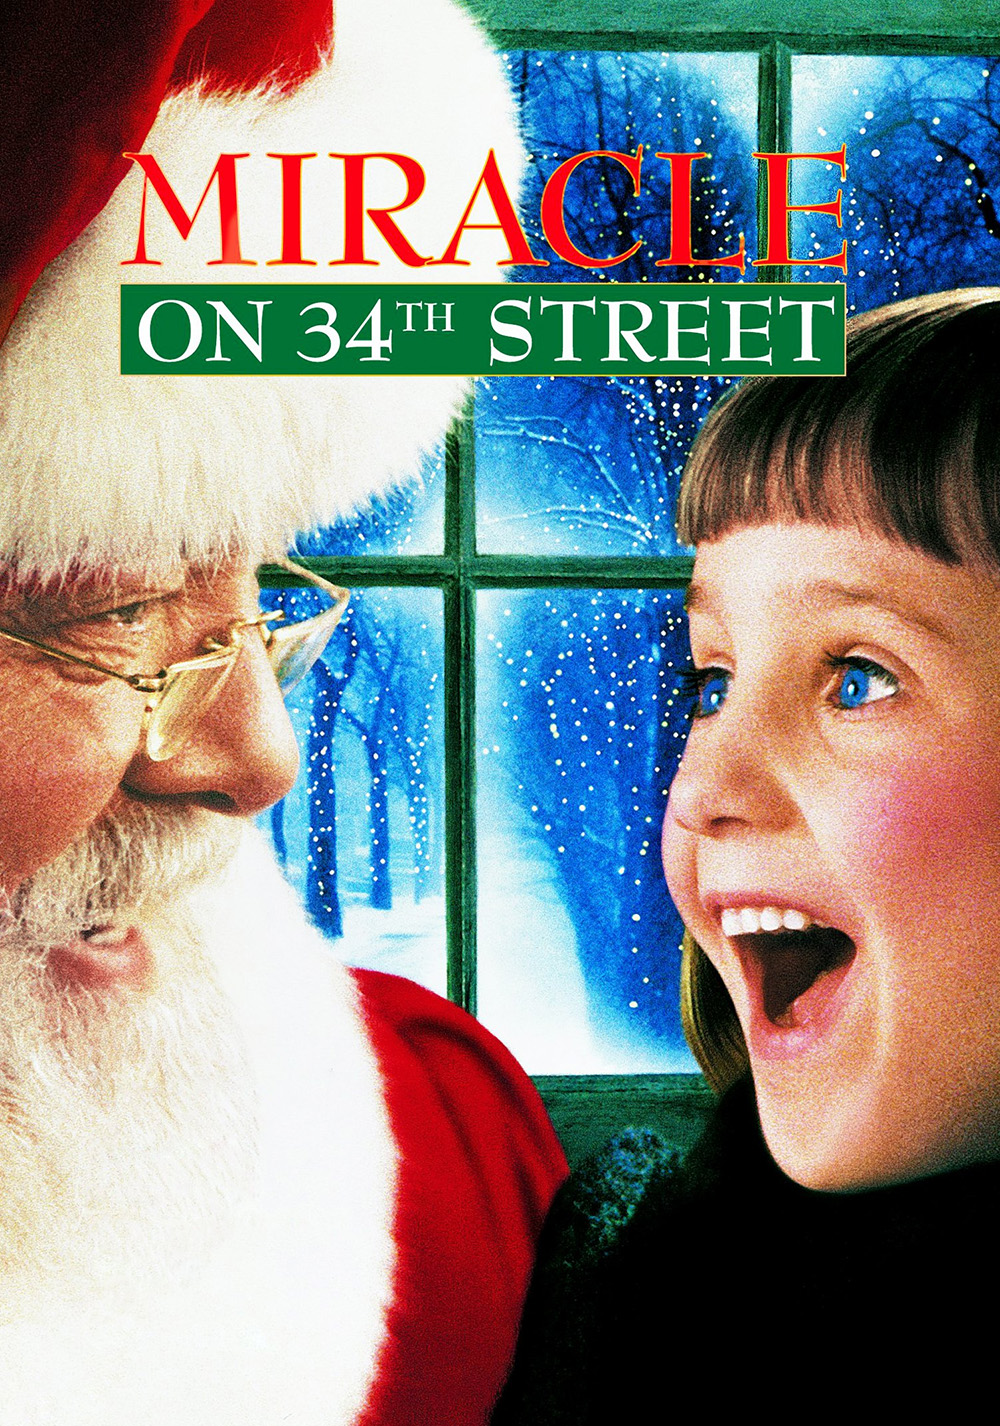 Image result for miracle on 34th street movie poster